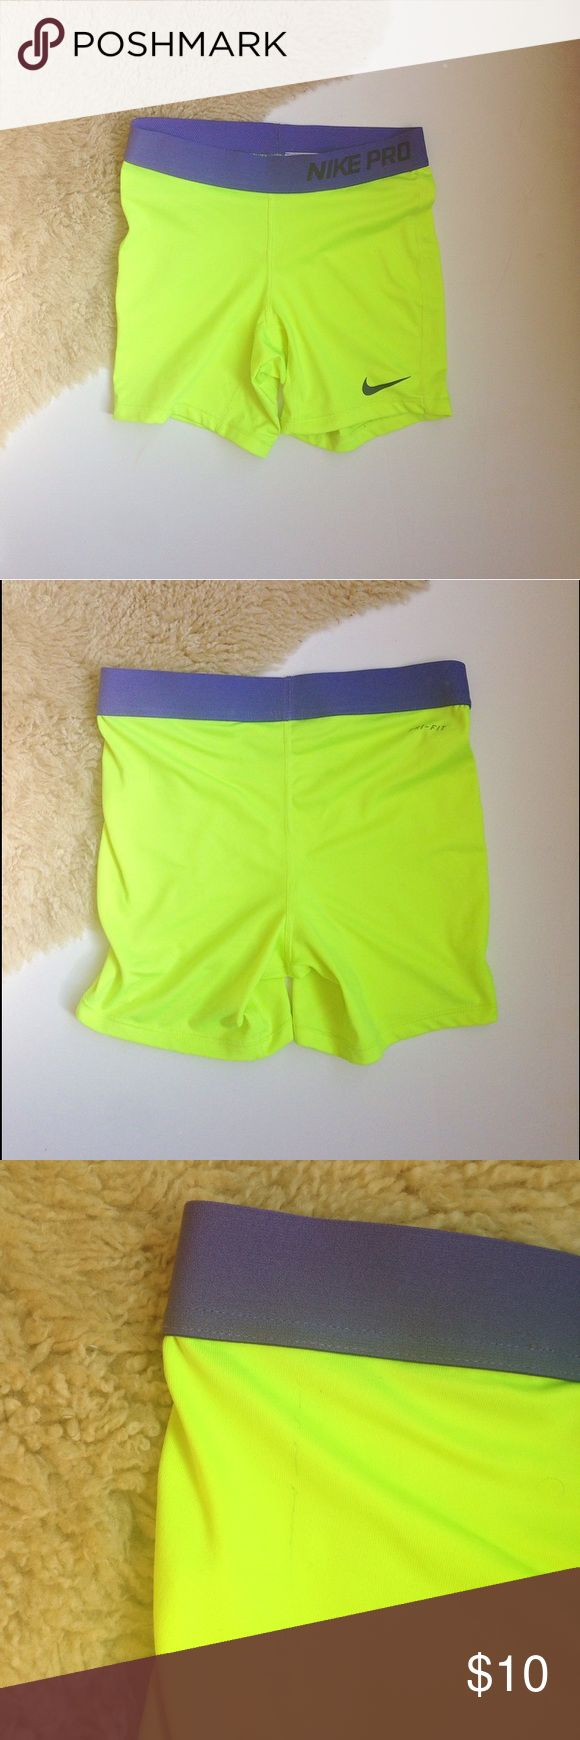 Nike Pro Shorts 🎉NEW ARRIVAL🎉 Yellow and Purple Nike Pro Shorts.  Girls Size Large- easily fit a Women's XS-S.   Small and very faint marks shown in pictures. Not noticeable when on, and can easily be removed with some spot cleaning. Reasonable offers welcome. Thanks💕  Items $5 and under are free with purchase of one more item.   15% off bundle purchases of 2+  Xx, ElyseeBoutique 🌙 Nike Shorts